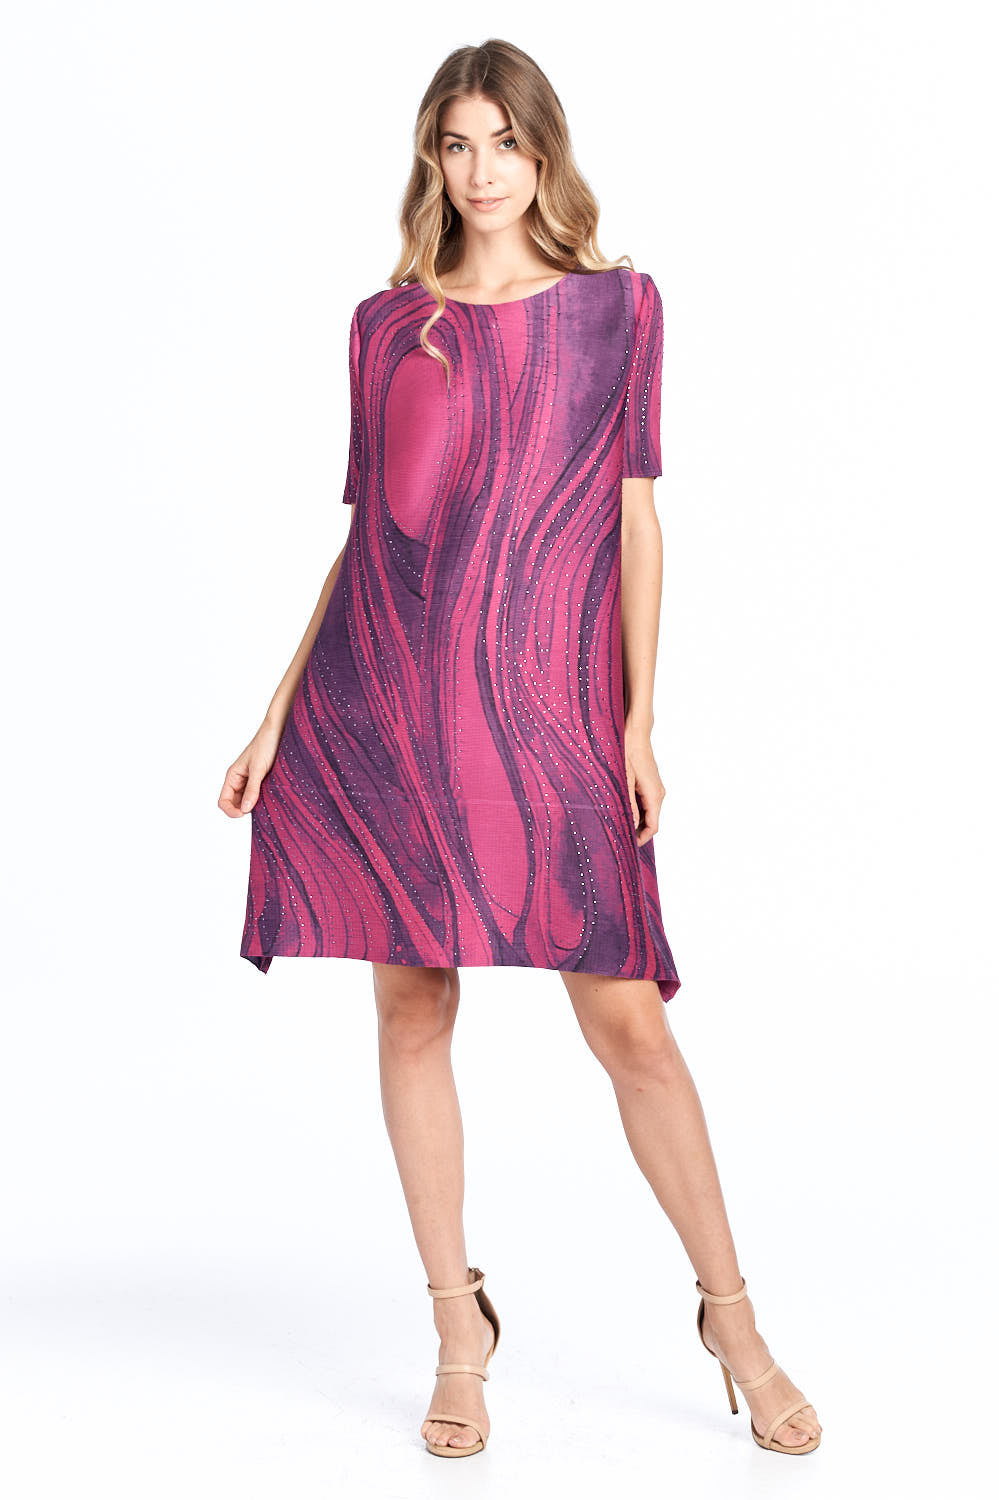 Pleated Chika Biz Dress Purple 16599-1